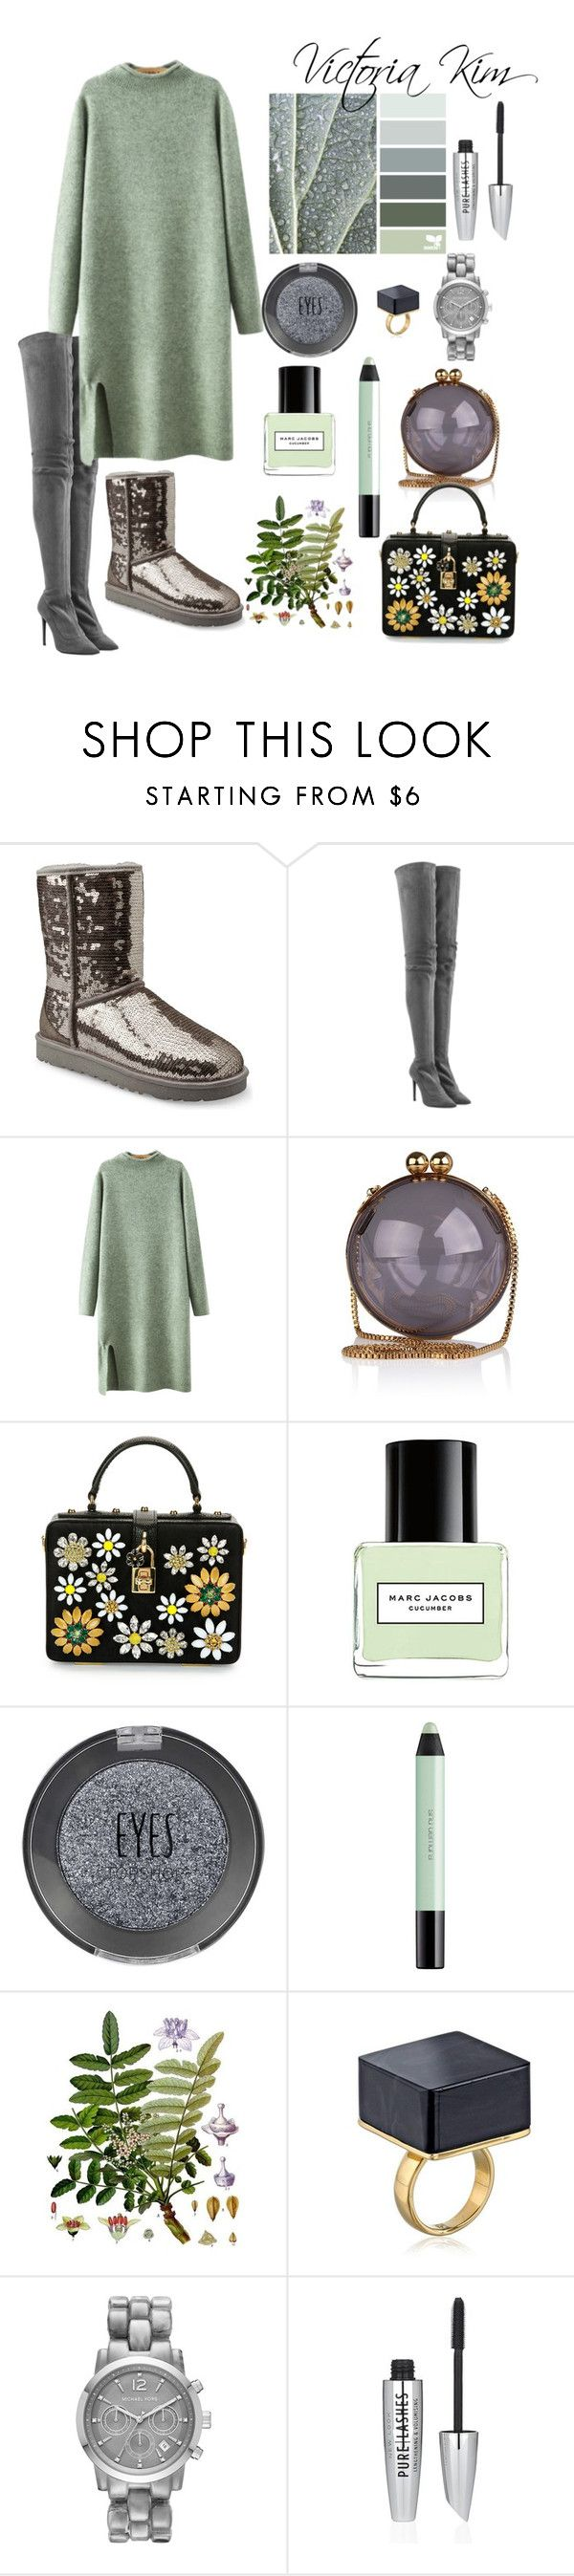 """Dress for winter"" by kimvictoria on Polyvore featuring UGG Australia, Tamara Mellon, Chicnova Fashion, Dolce&Gabbana, Marc Jacobs, Topshop, shu uemura, Michael Kors, women's clothing and women"